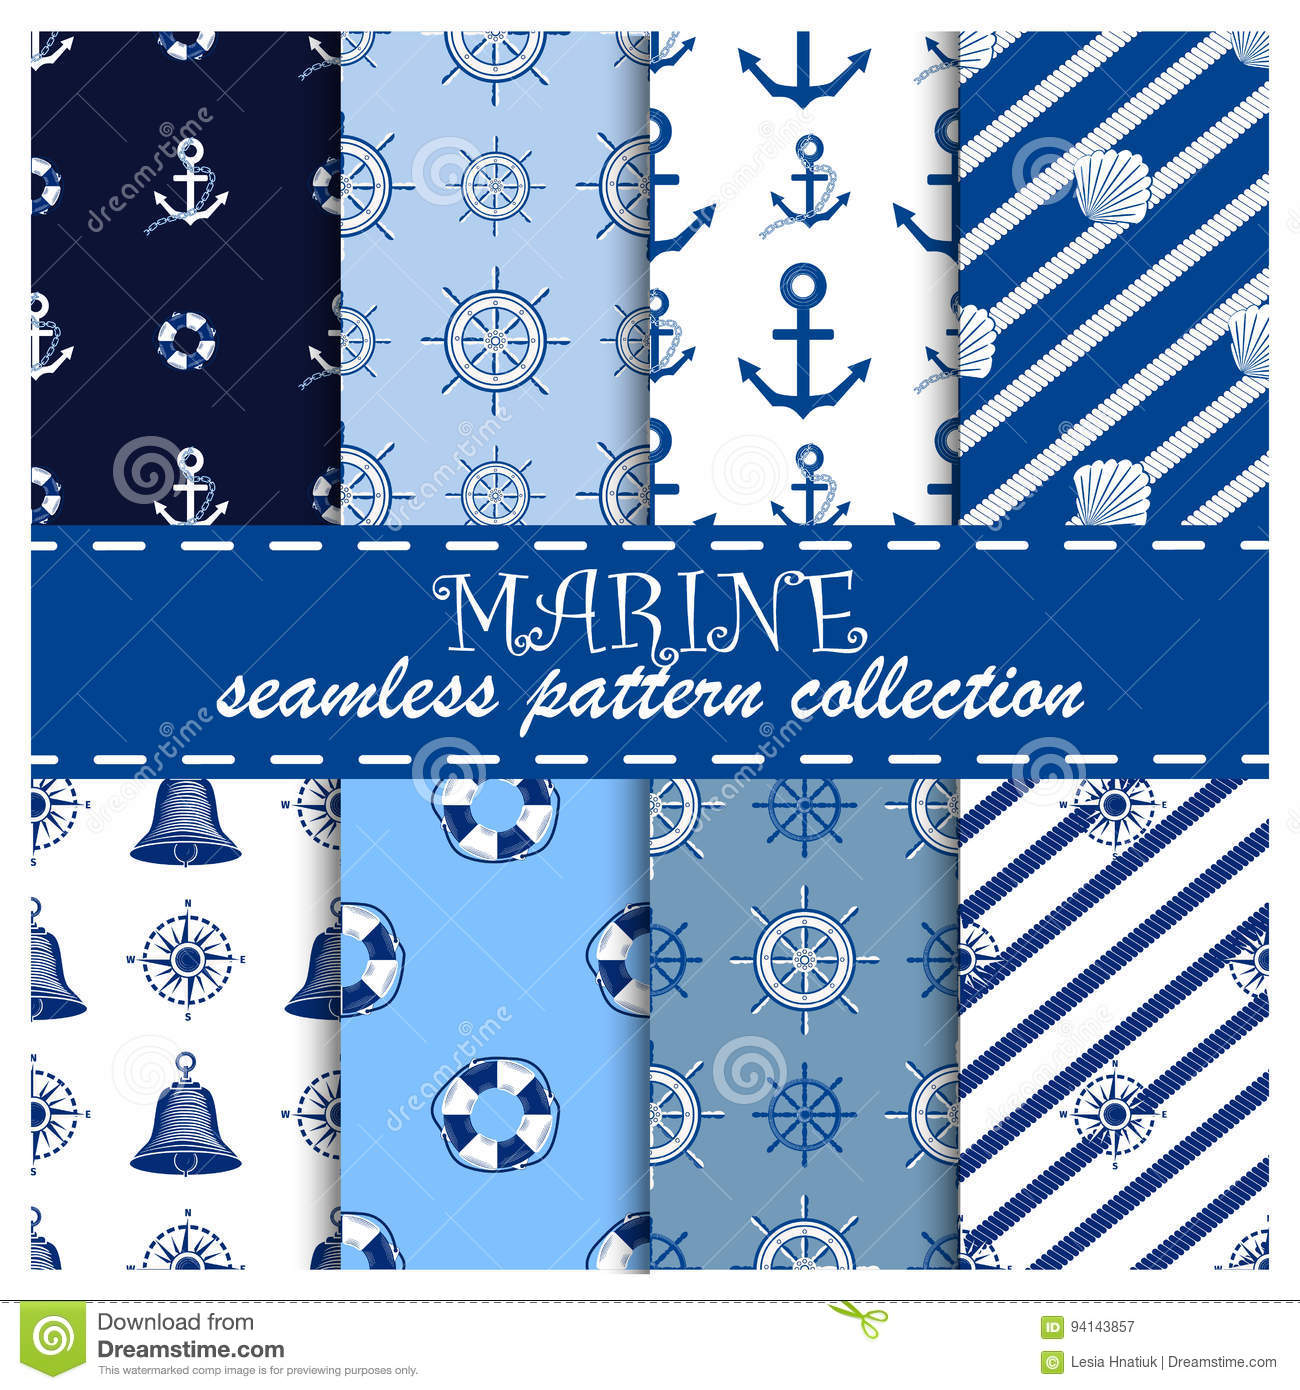 Nautical templates seamless pattern marine sea anchor design emblems graphics vector illustration.